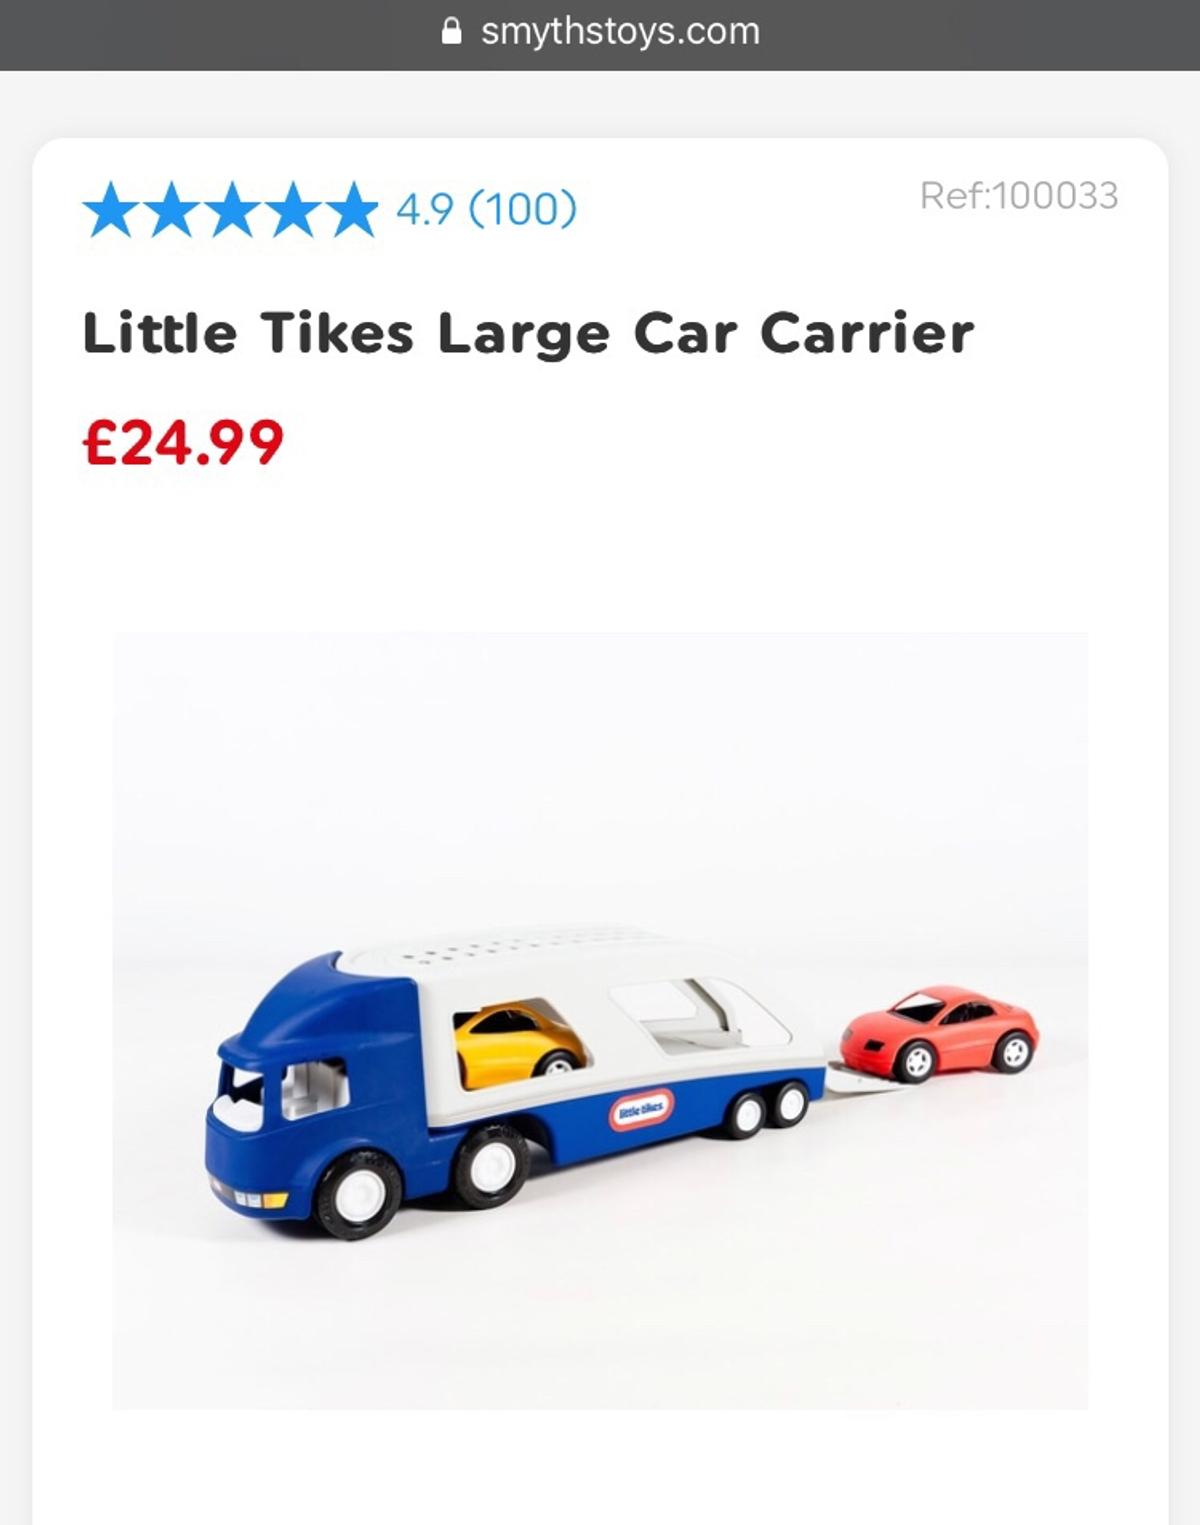 Little Tikes Large Car Carrier Contents: 2 sleek sports cars and Ramp Excellent condition Pick up only from Aldgate/ whitechapel E1